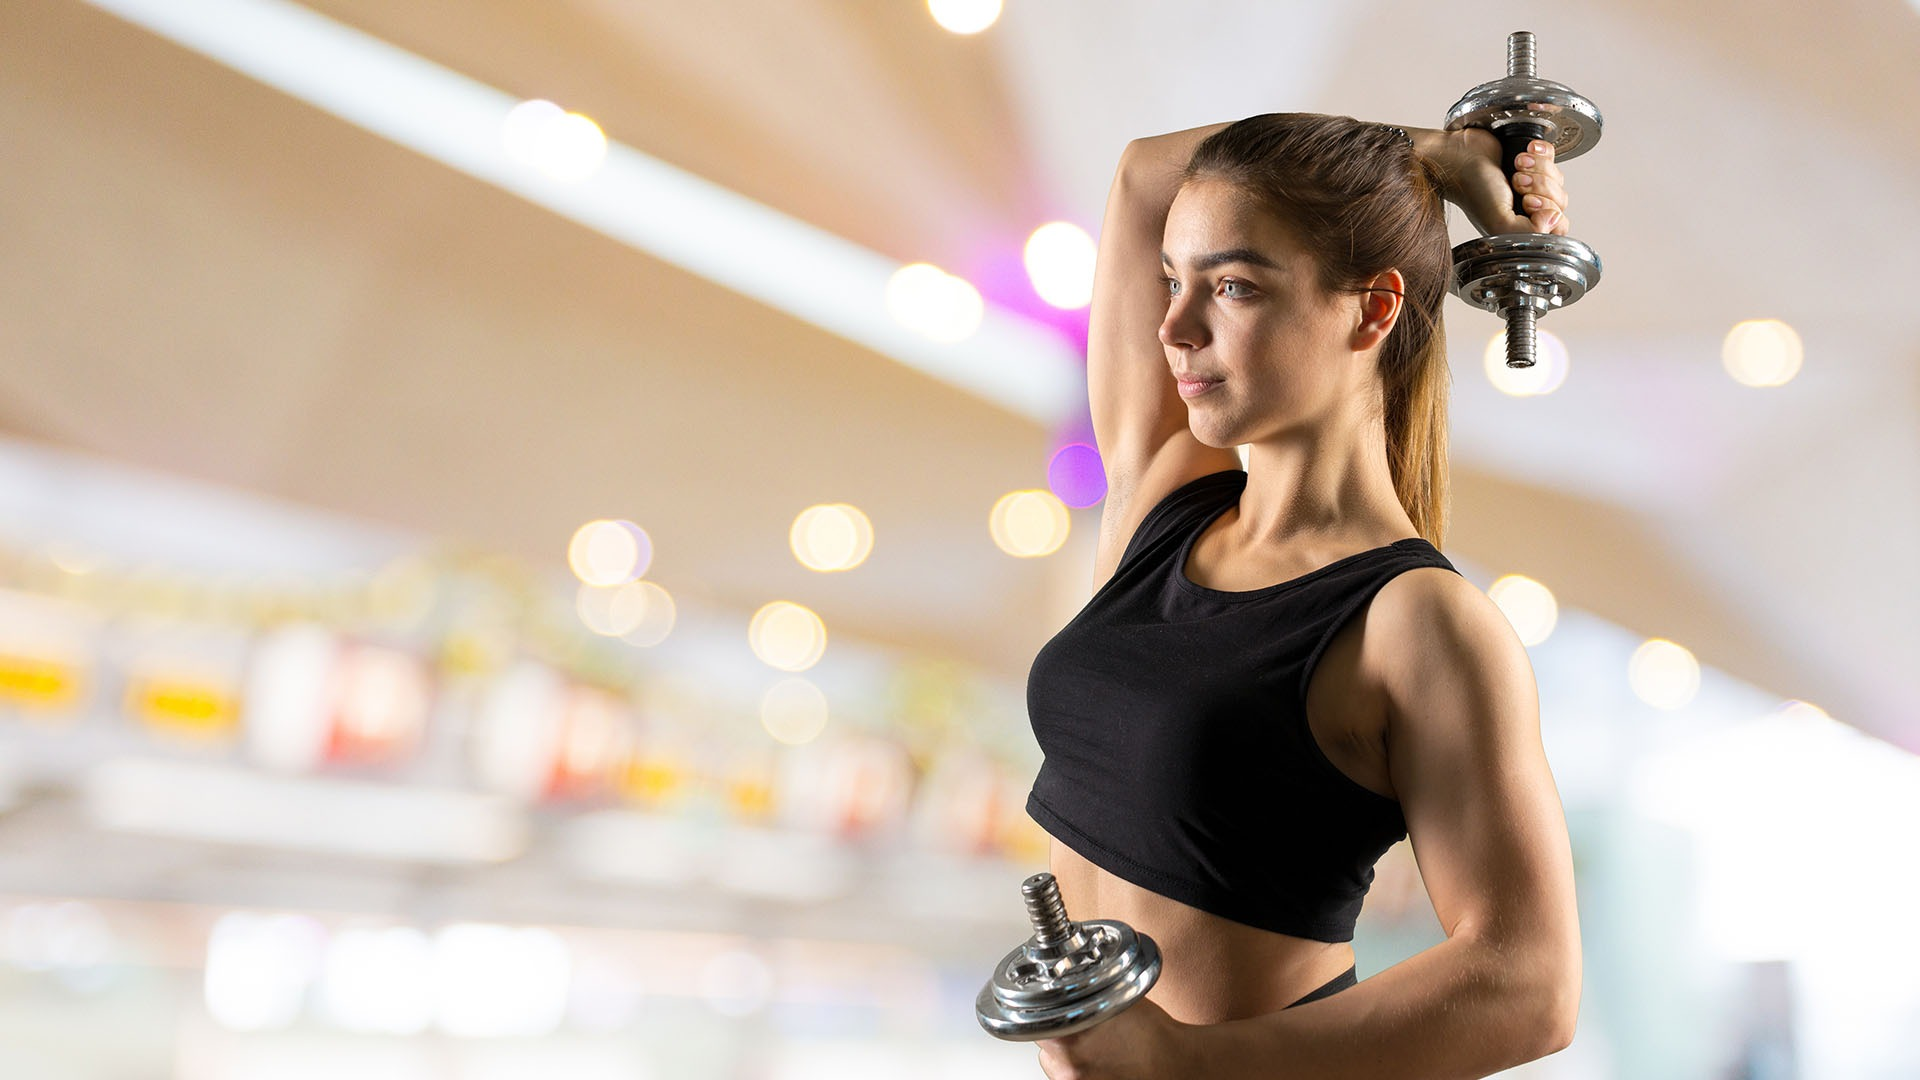 Studio close up photo of young woman lifting dumbbell